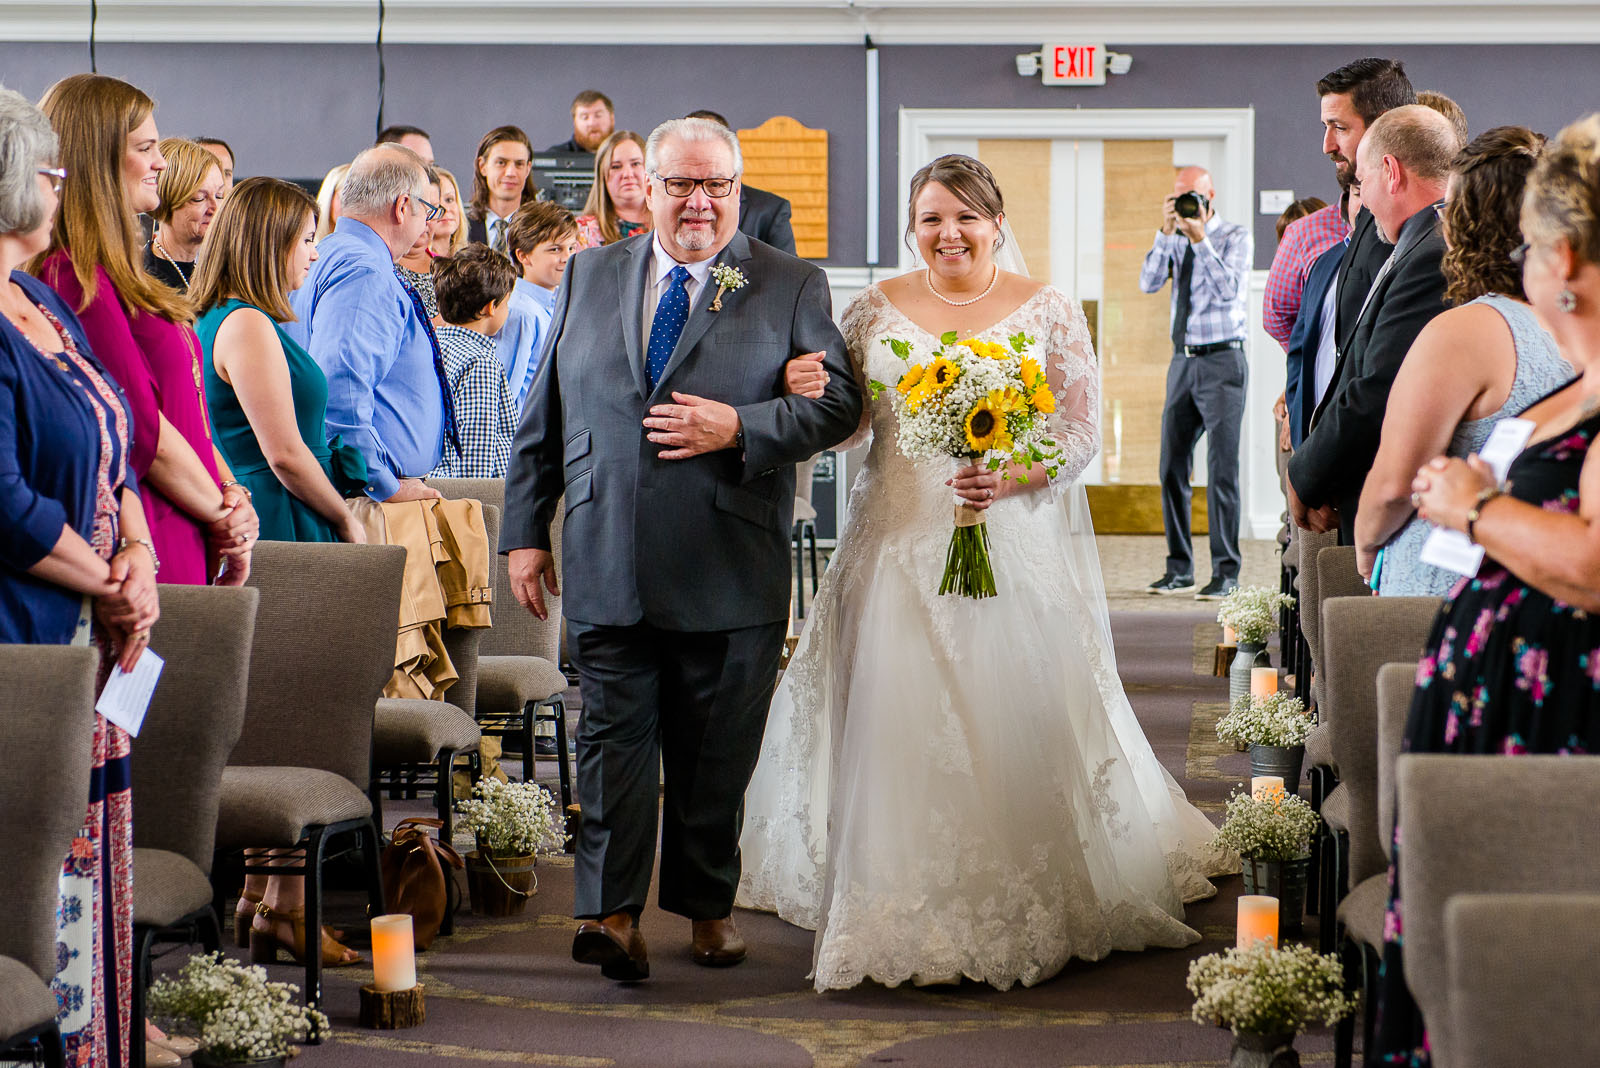 Eric_and_Christy_Photography_Blog_Wedding_Stacey_Geoff-6